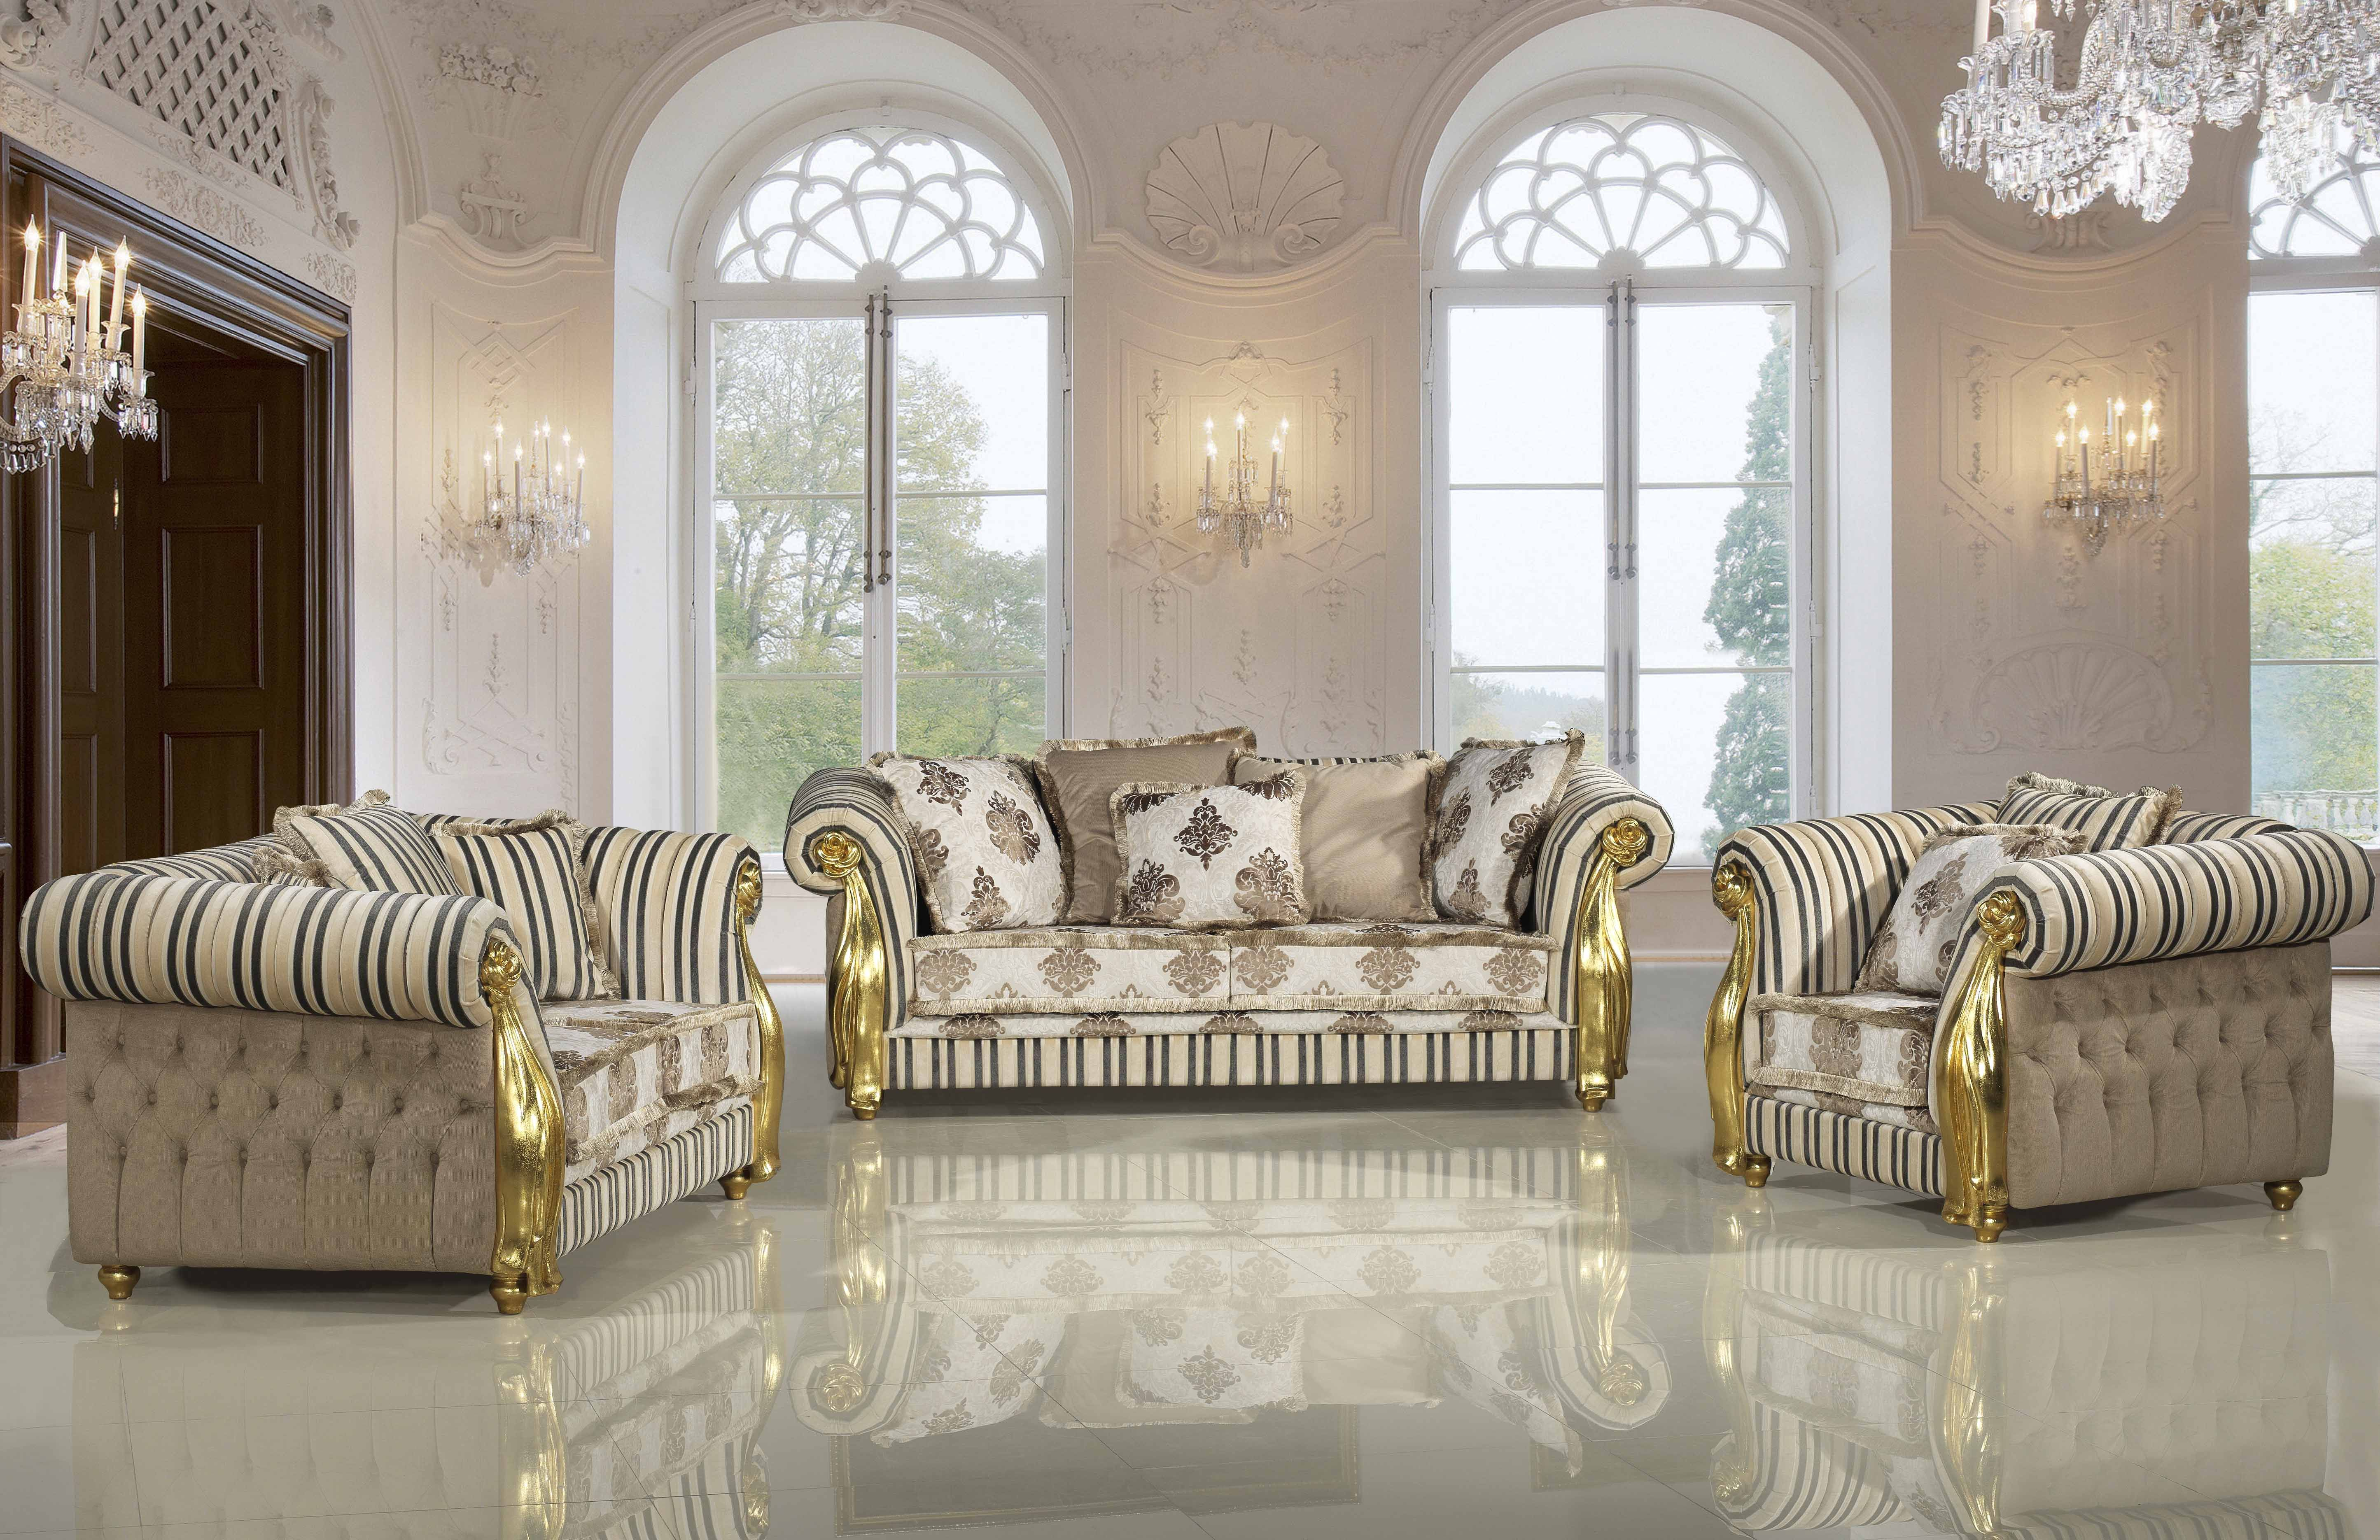 Amazing Cream Upholstered Tufted Chaise Lounge Sofa With Gold Frame Italian Furniture Living Room Wooden Sofa Set Designs Sofa Set Designs